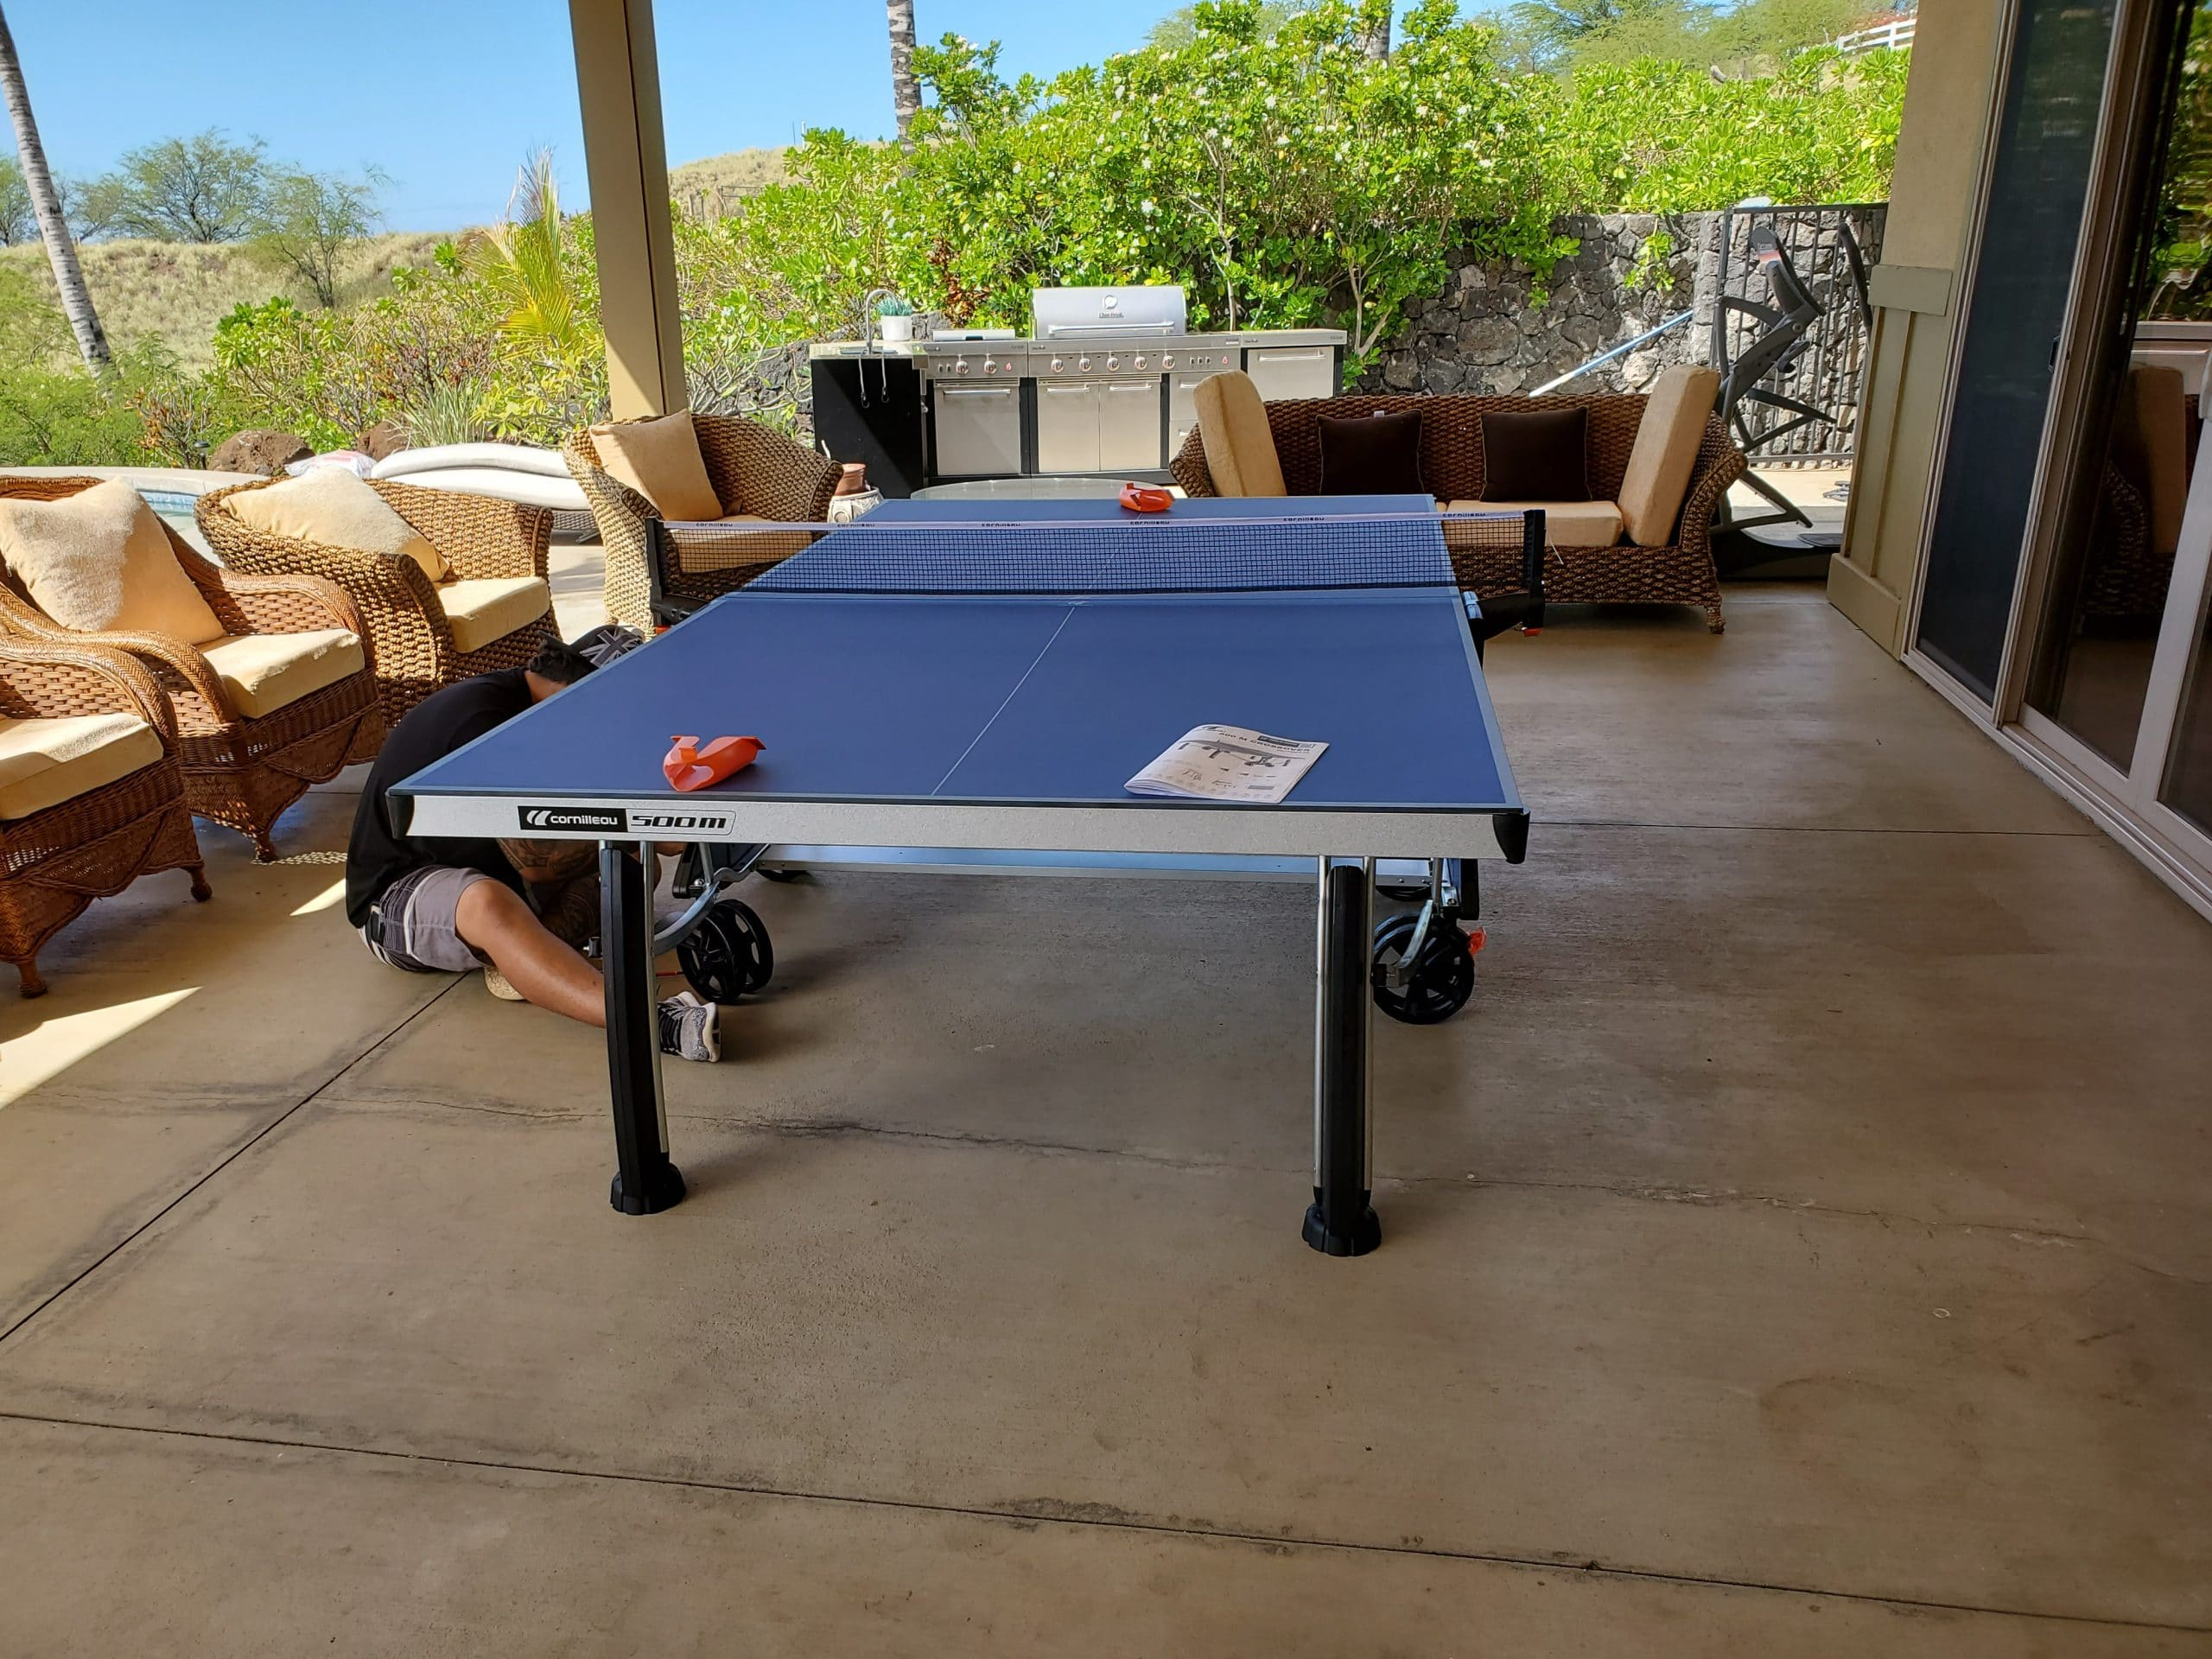 cornilleau 500M ping pong table in Hawaii